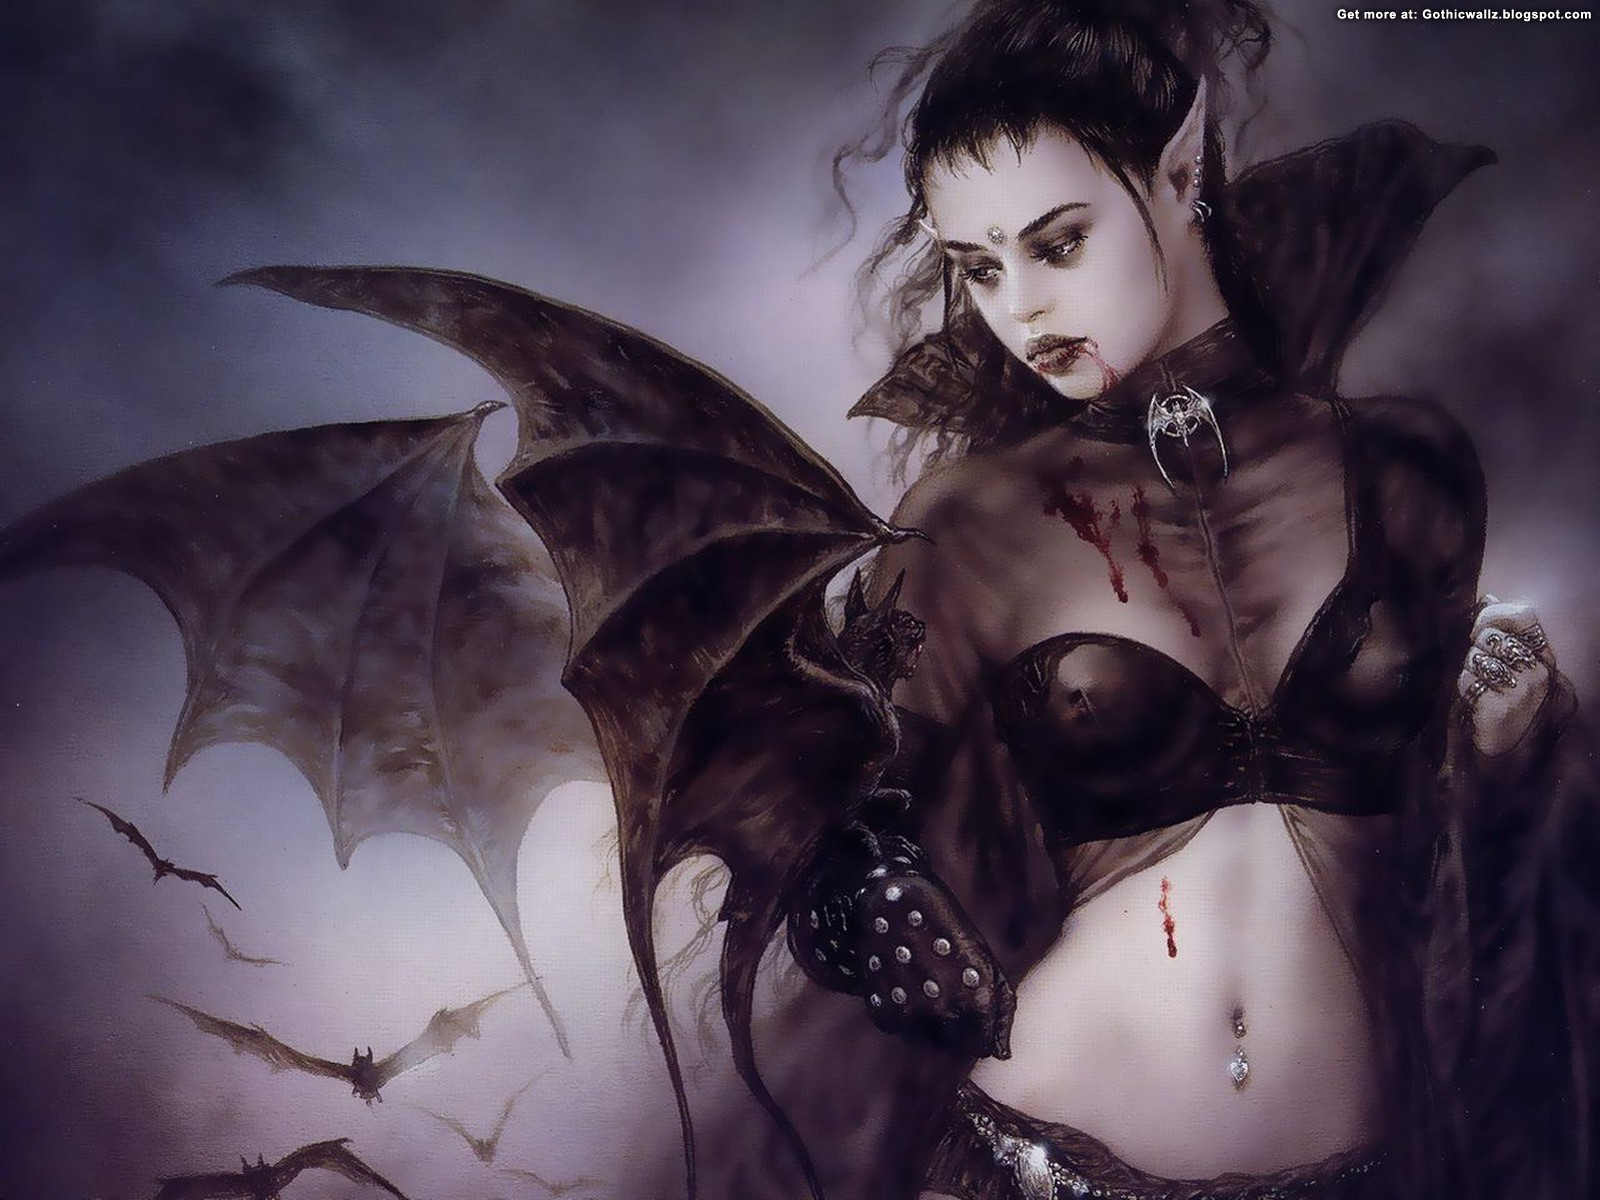 Vampire Girl | Gothic Wallpaper Download